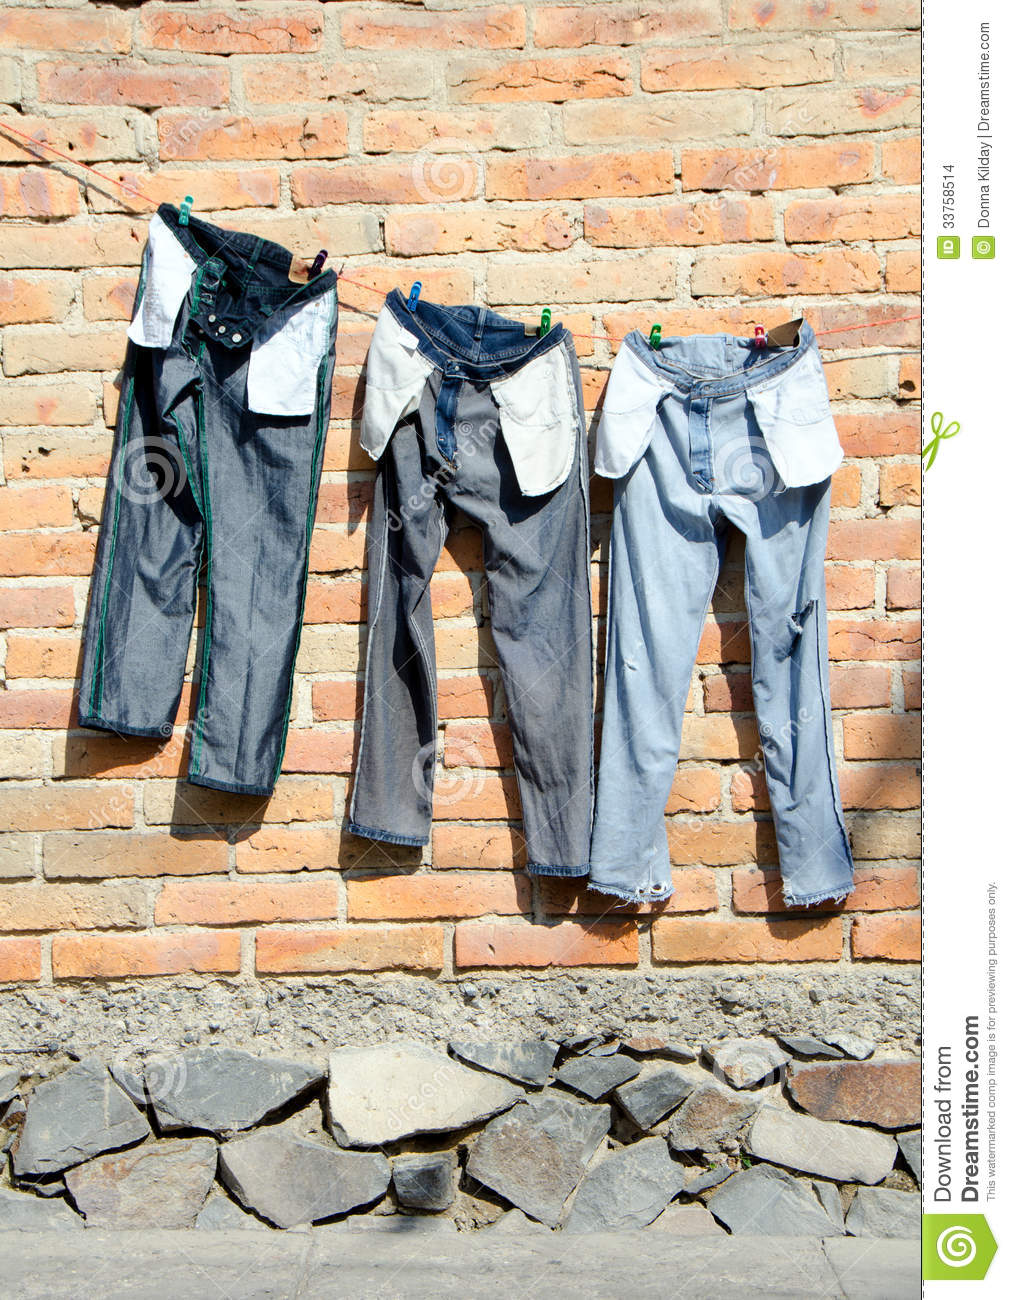 Clothes Drying On A Clothesline ~ Jeans on clothesline stock photo image of energy stone